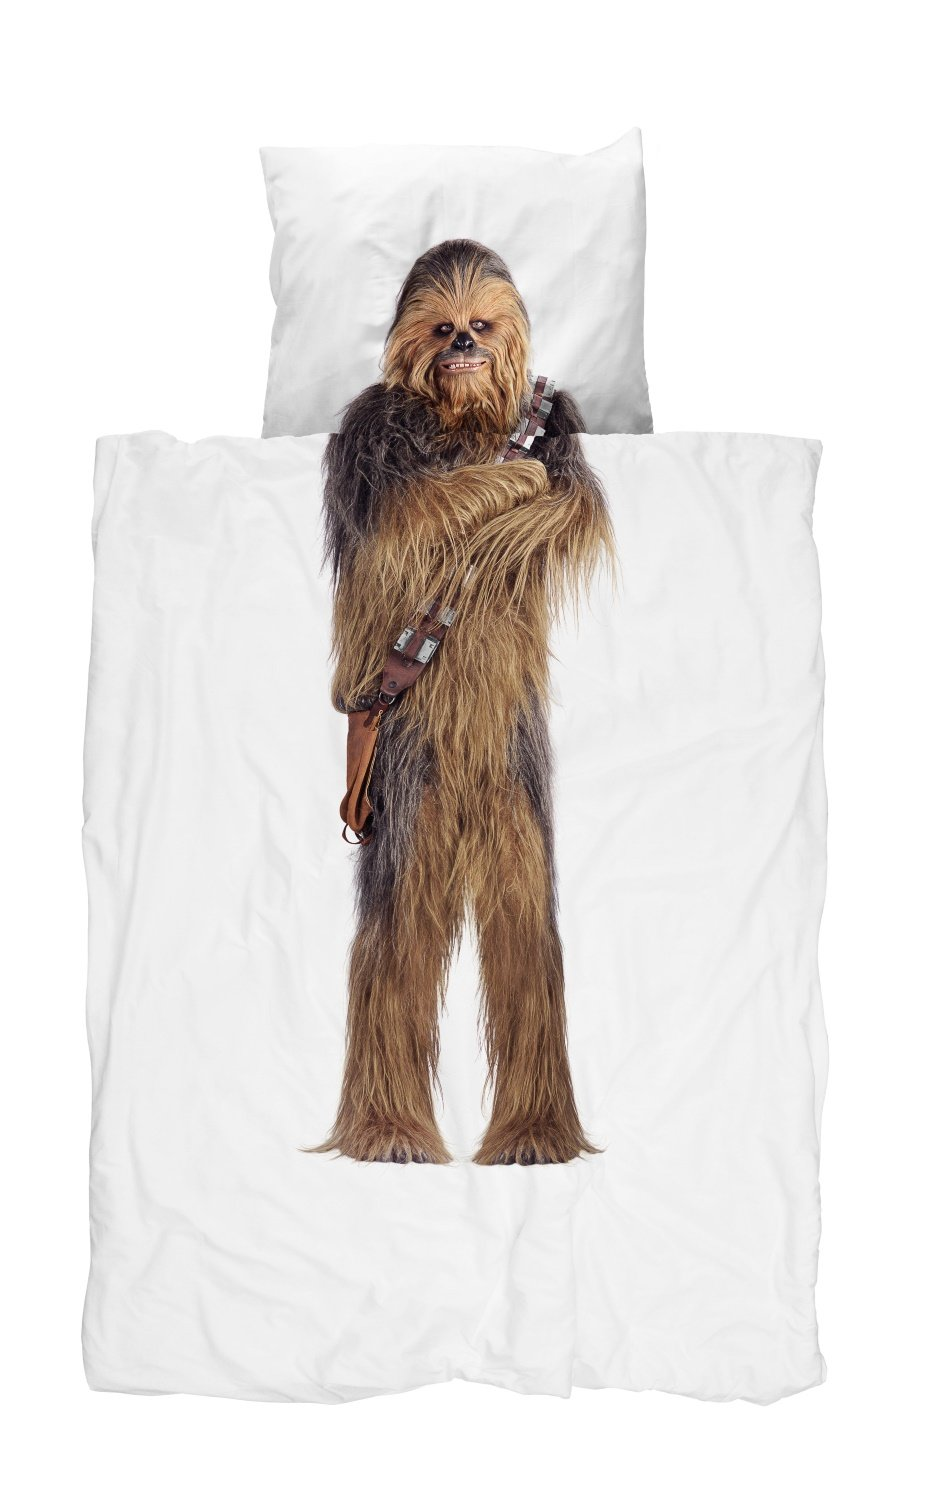 Bettwäsche Starwars Snurk Star Wars Chewbacca Bettwäsche-set 135x200 Cm